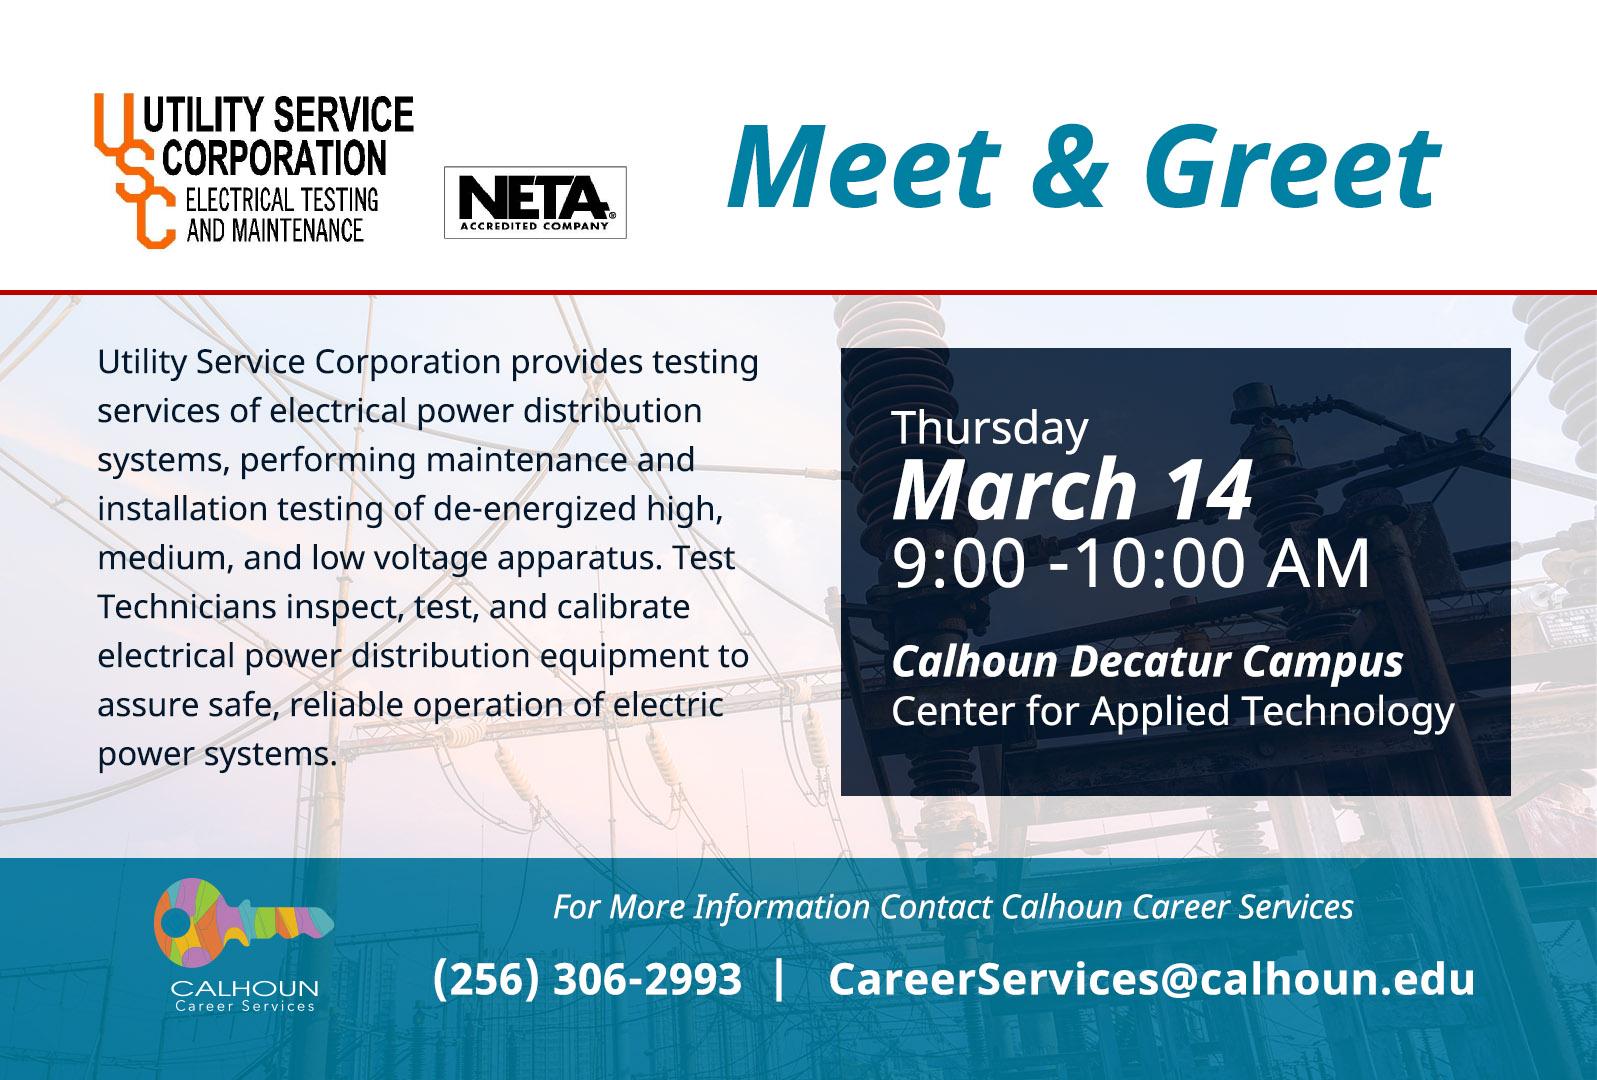 Meet and Greet 03-14-2019 9:00 AM Utility Service Corporation provides testing services of electrical power distribution systems, performing maintenance and installation testing of de-energized high, medium, and low voltage apparatus. Test Technicians inspect, test, and calibrate electrical power distribution equipment to assure safe, reliable operation of electric power systems.